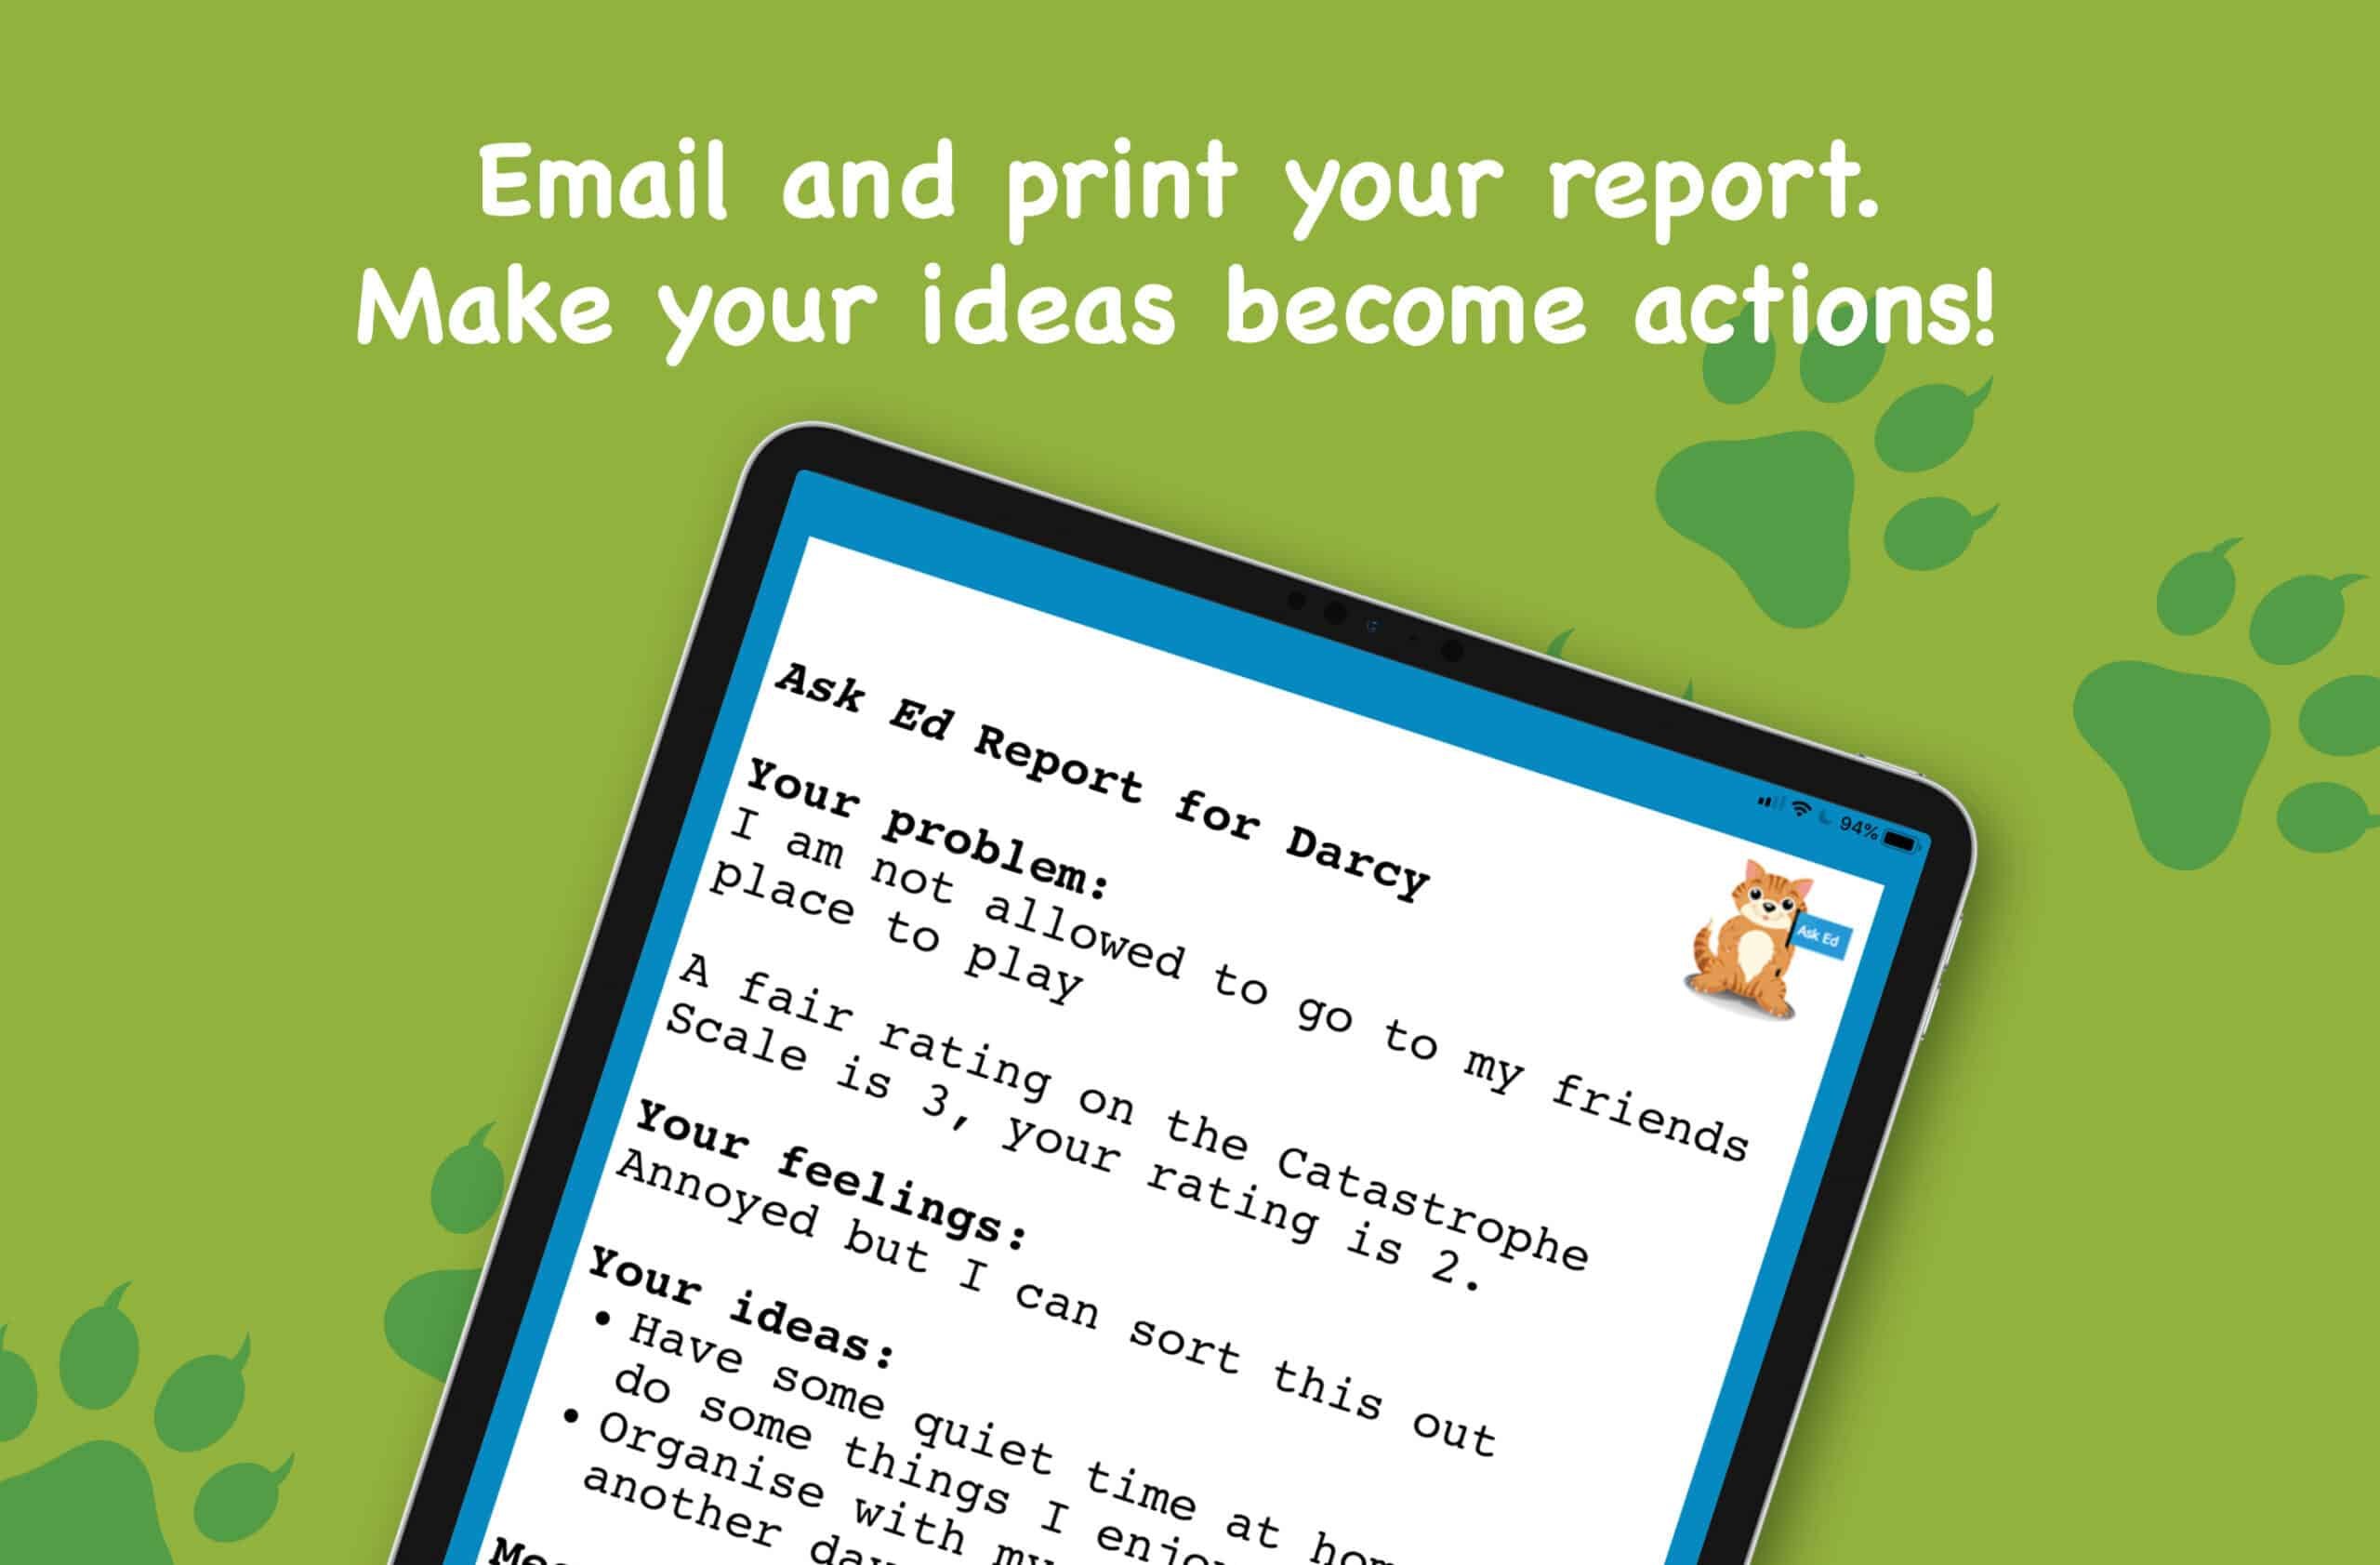 Did you know that Ask Ed provides a 'special  report'?